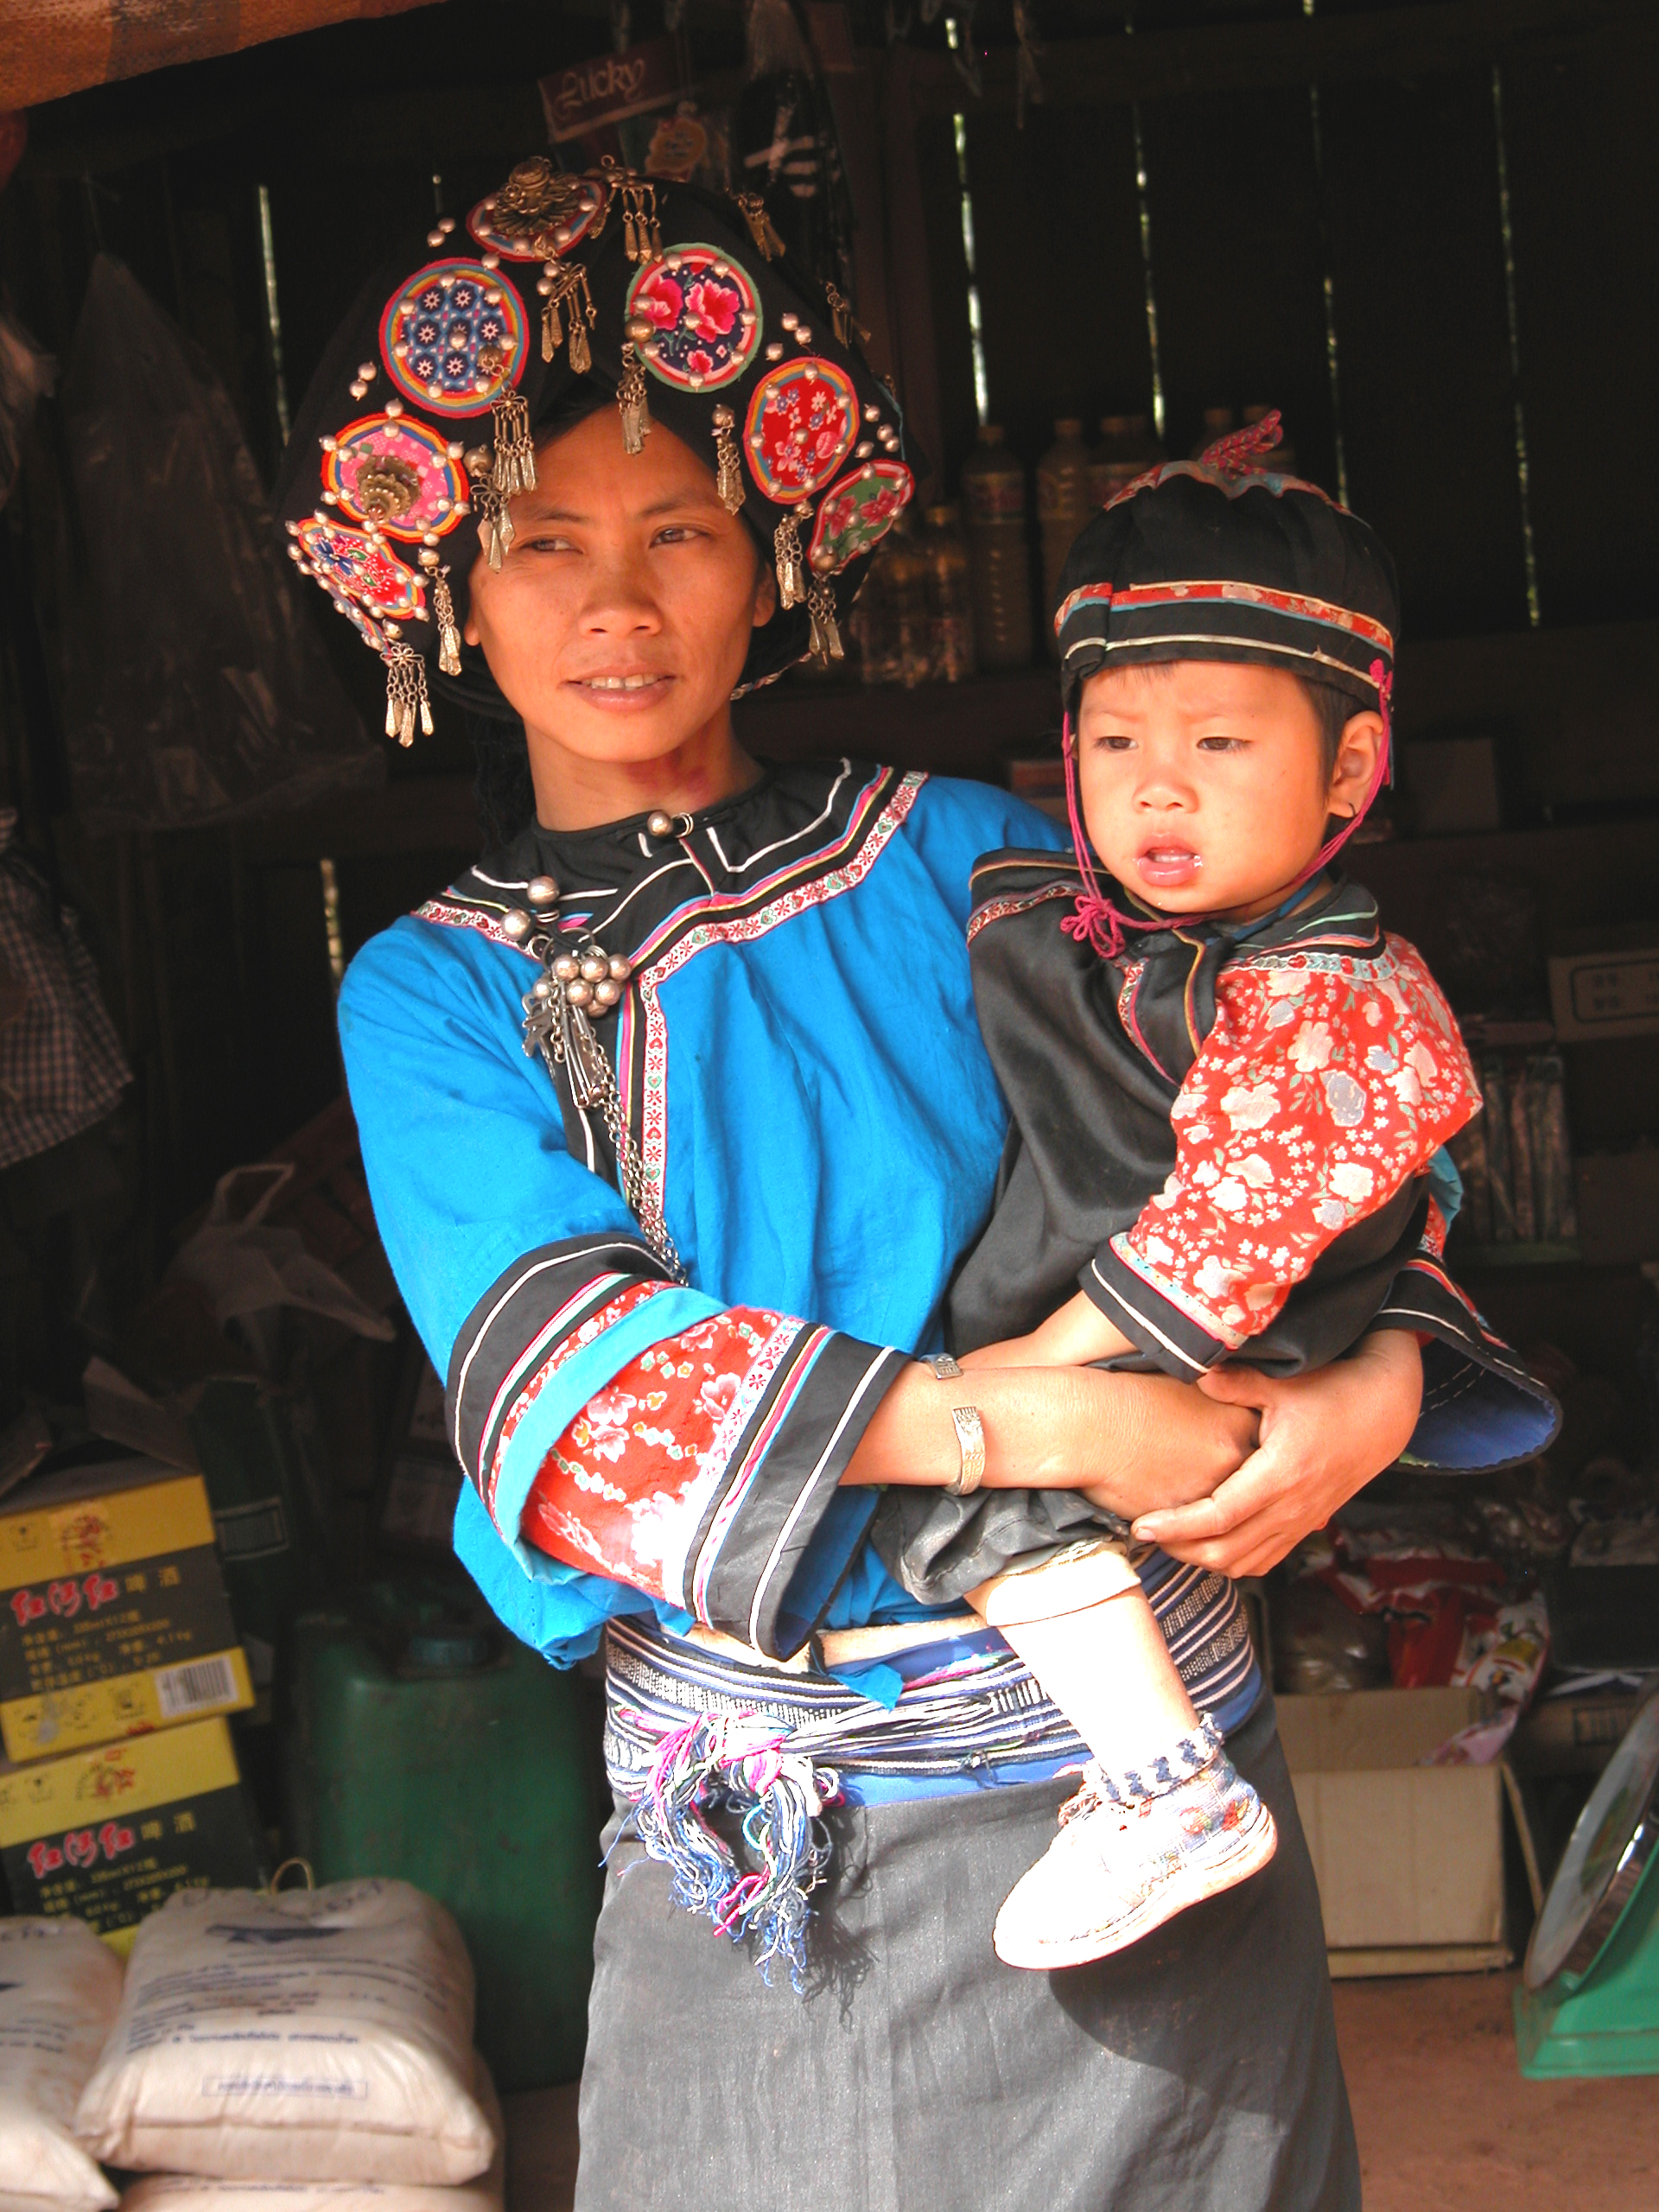 lao people and laos Every traveler had told me, lao people will be the friendliest, most laid back   prices in laos were inflated for foreigners, and we are not given the chance for.